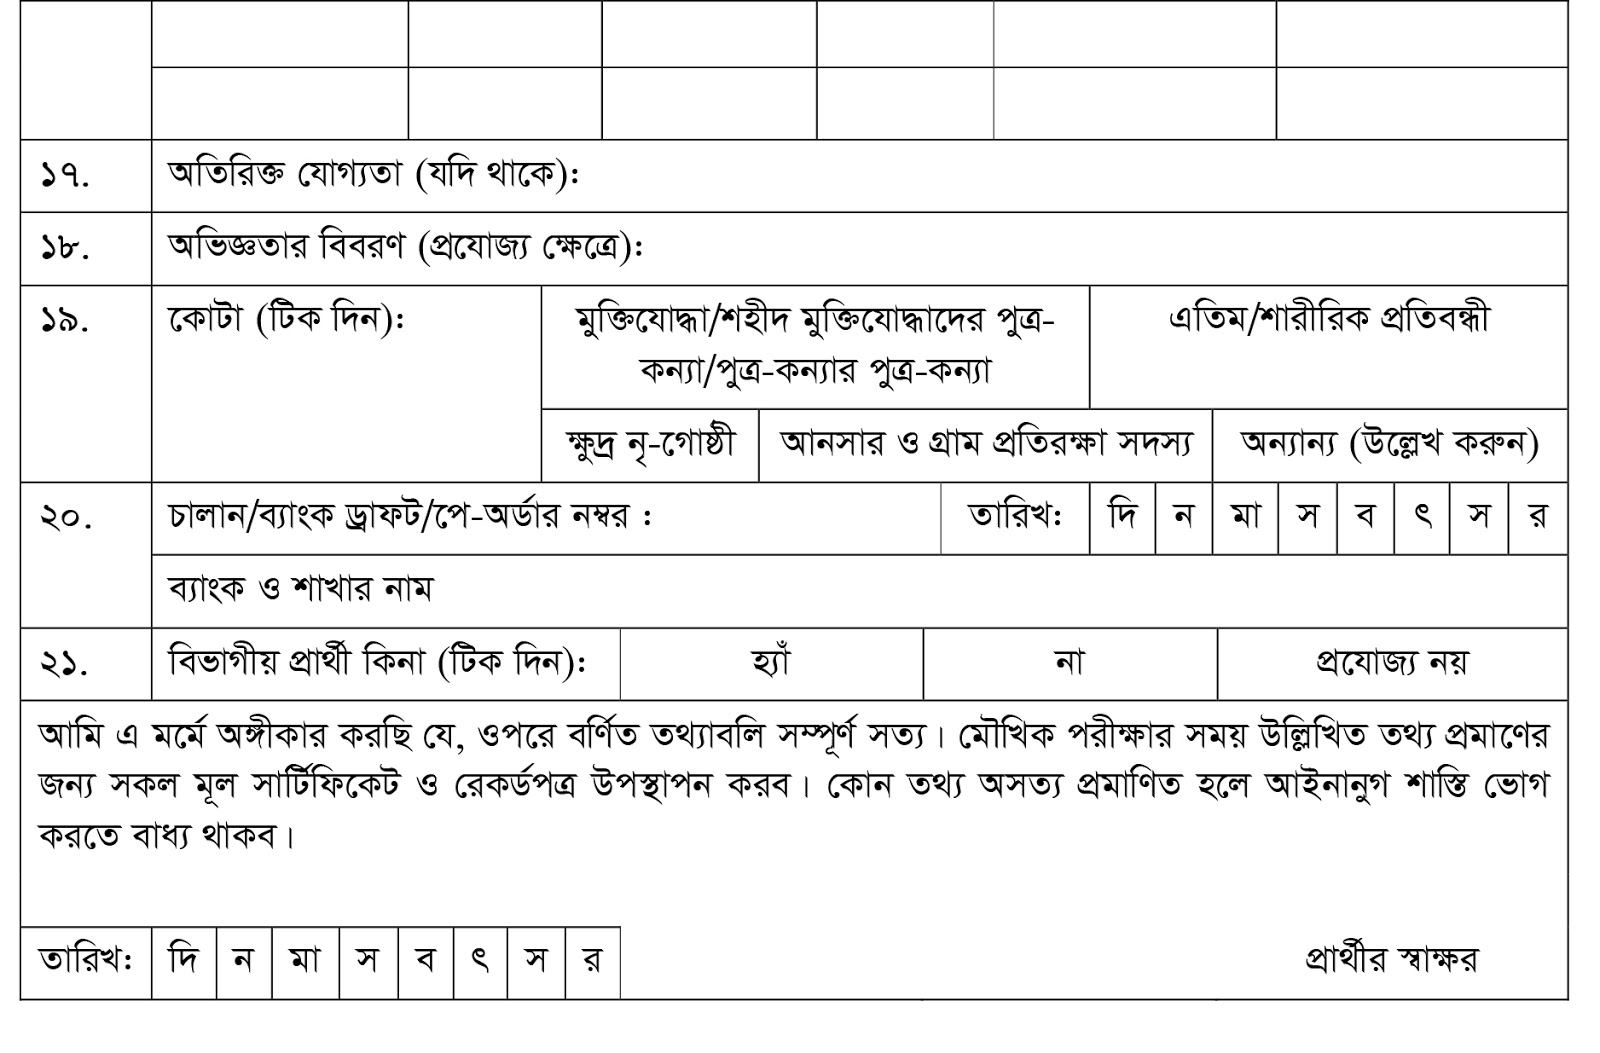 Dhaka Integrated Traffice Managment Project (DITMP) Job Application Form